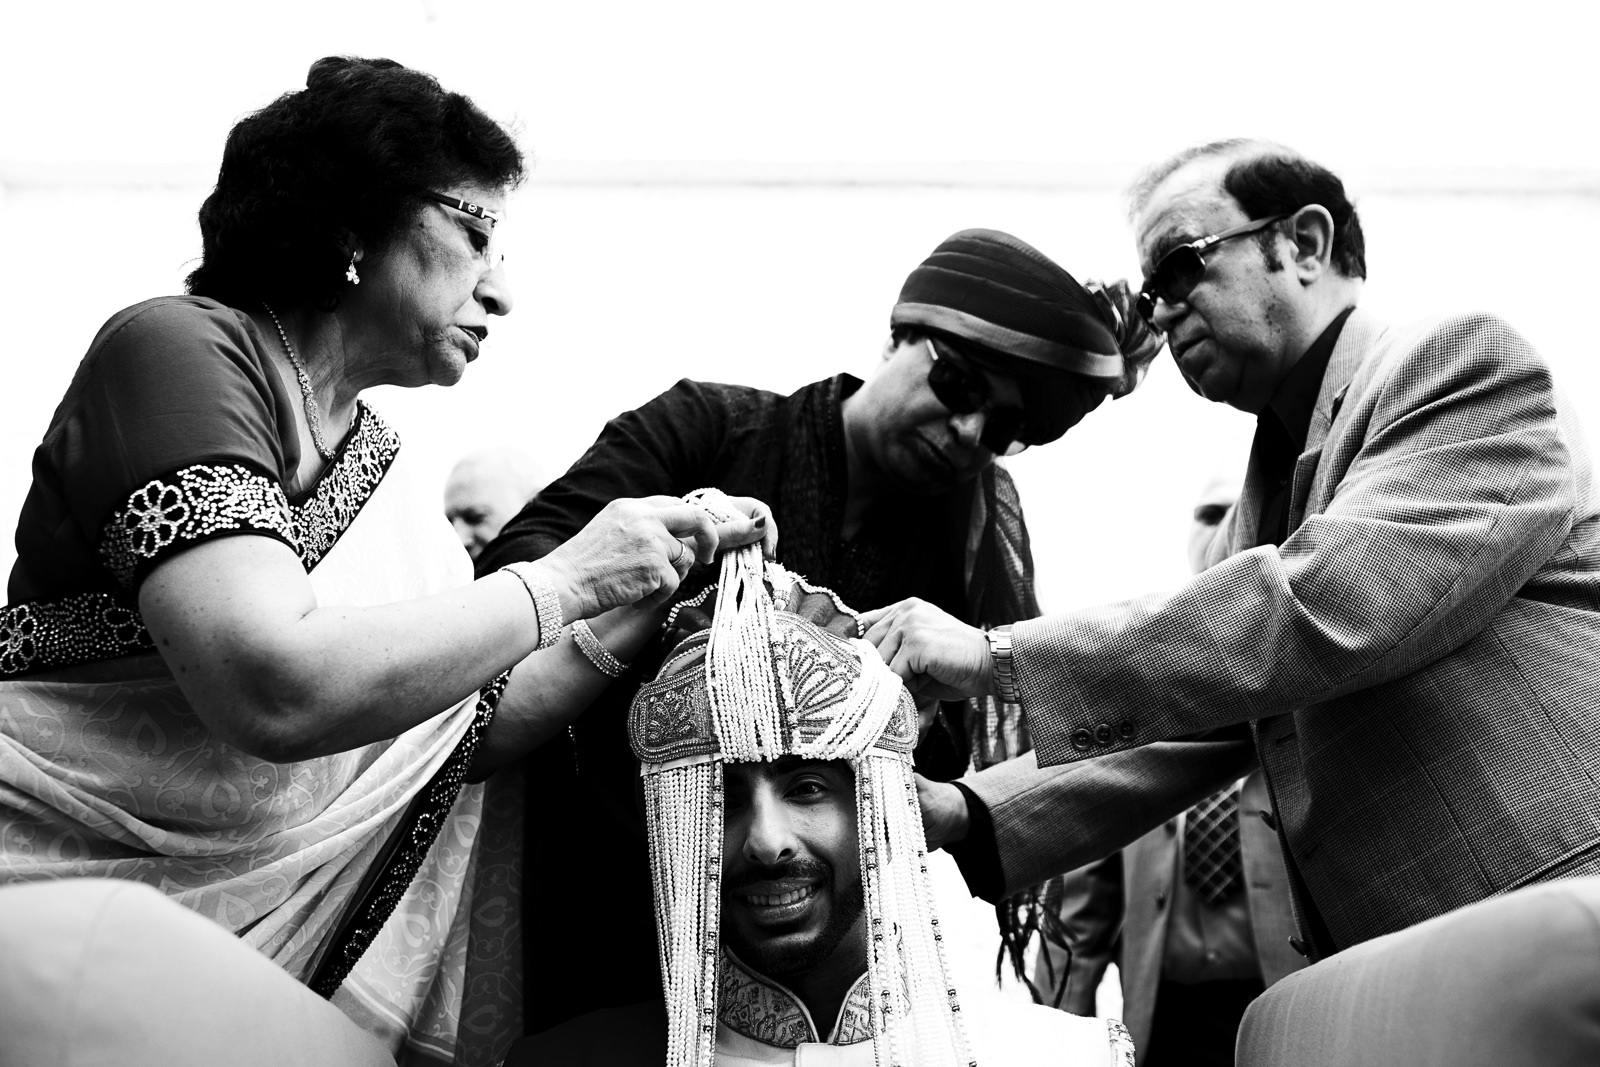 Family of the groom help him with hindu traditional hat before the wedding ceremony